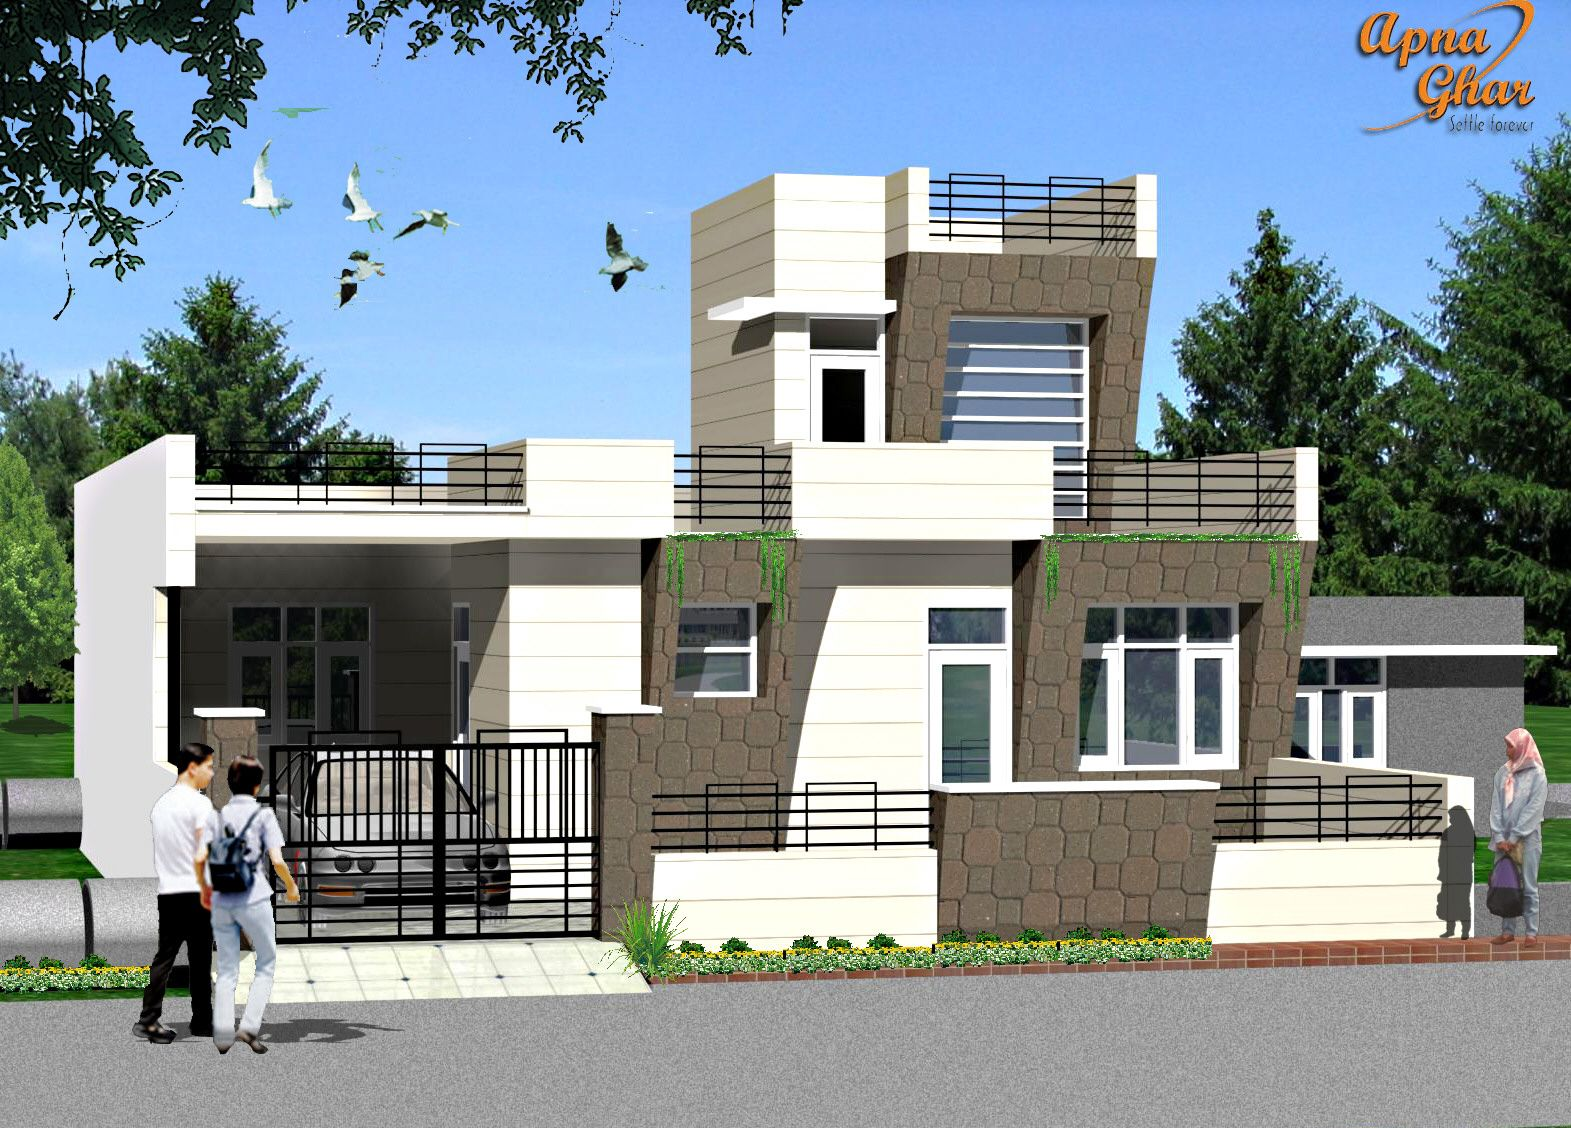 3 bedroom modern simplex 1 floor house design area Modern house 1 floor